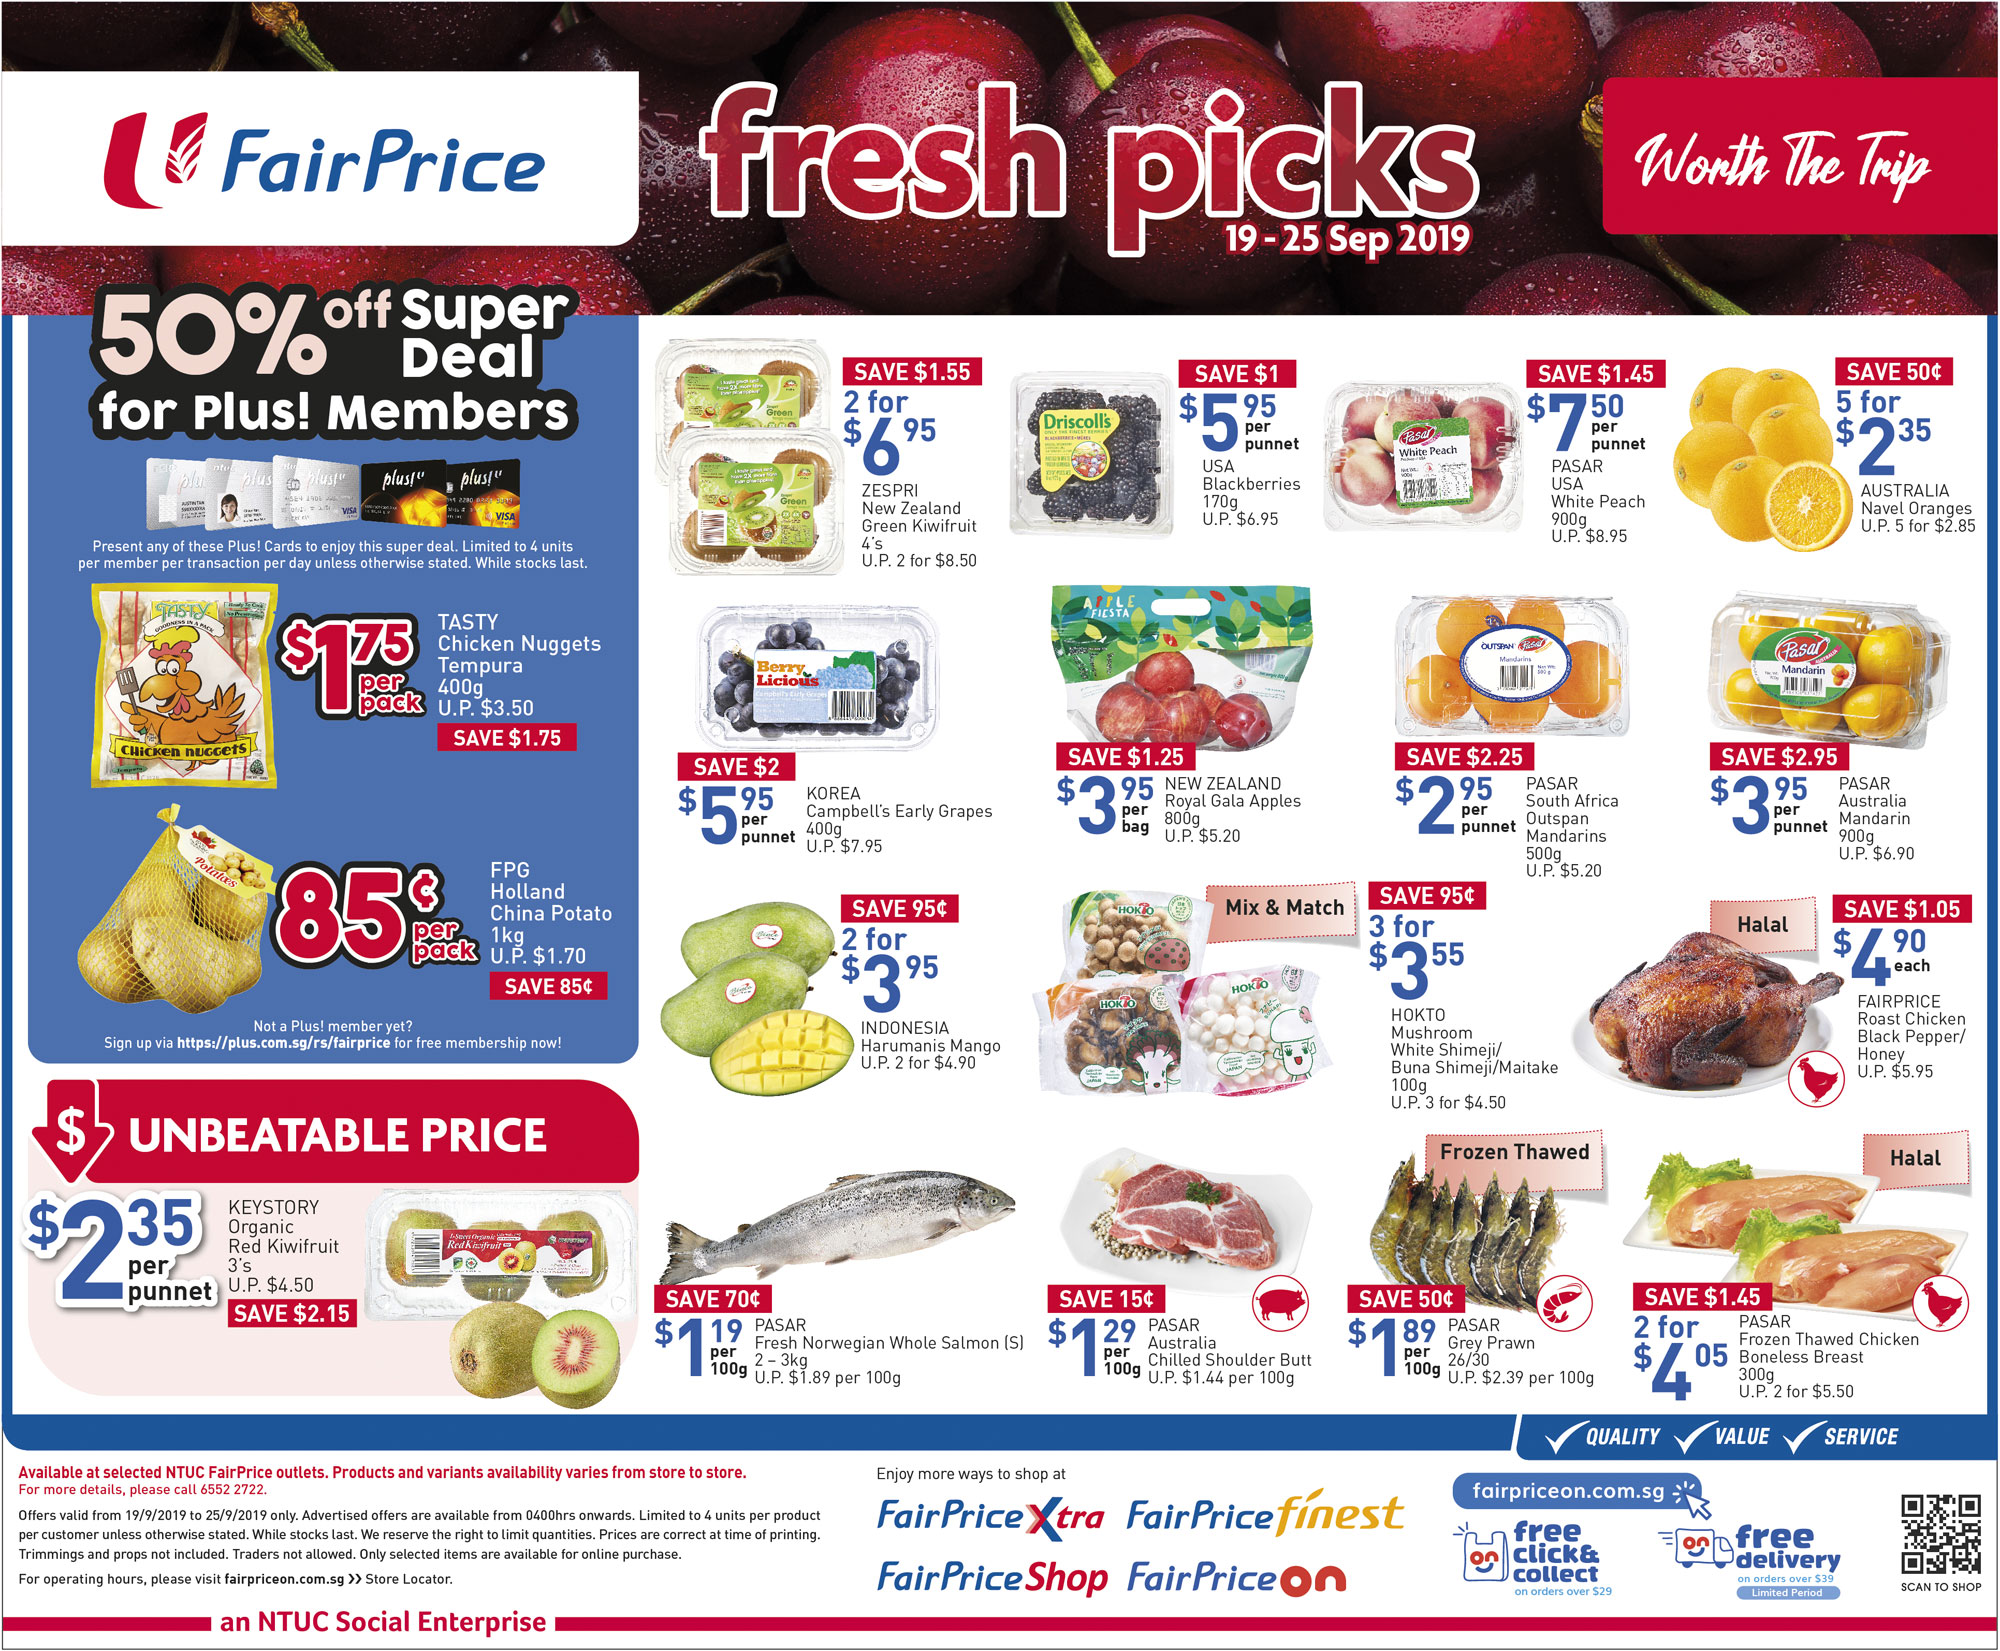 NTUC FairPrice Singapore Your Weekly Saver Promotion 19-25 Sep 2019 | Why Not Deals 3 & Promotions